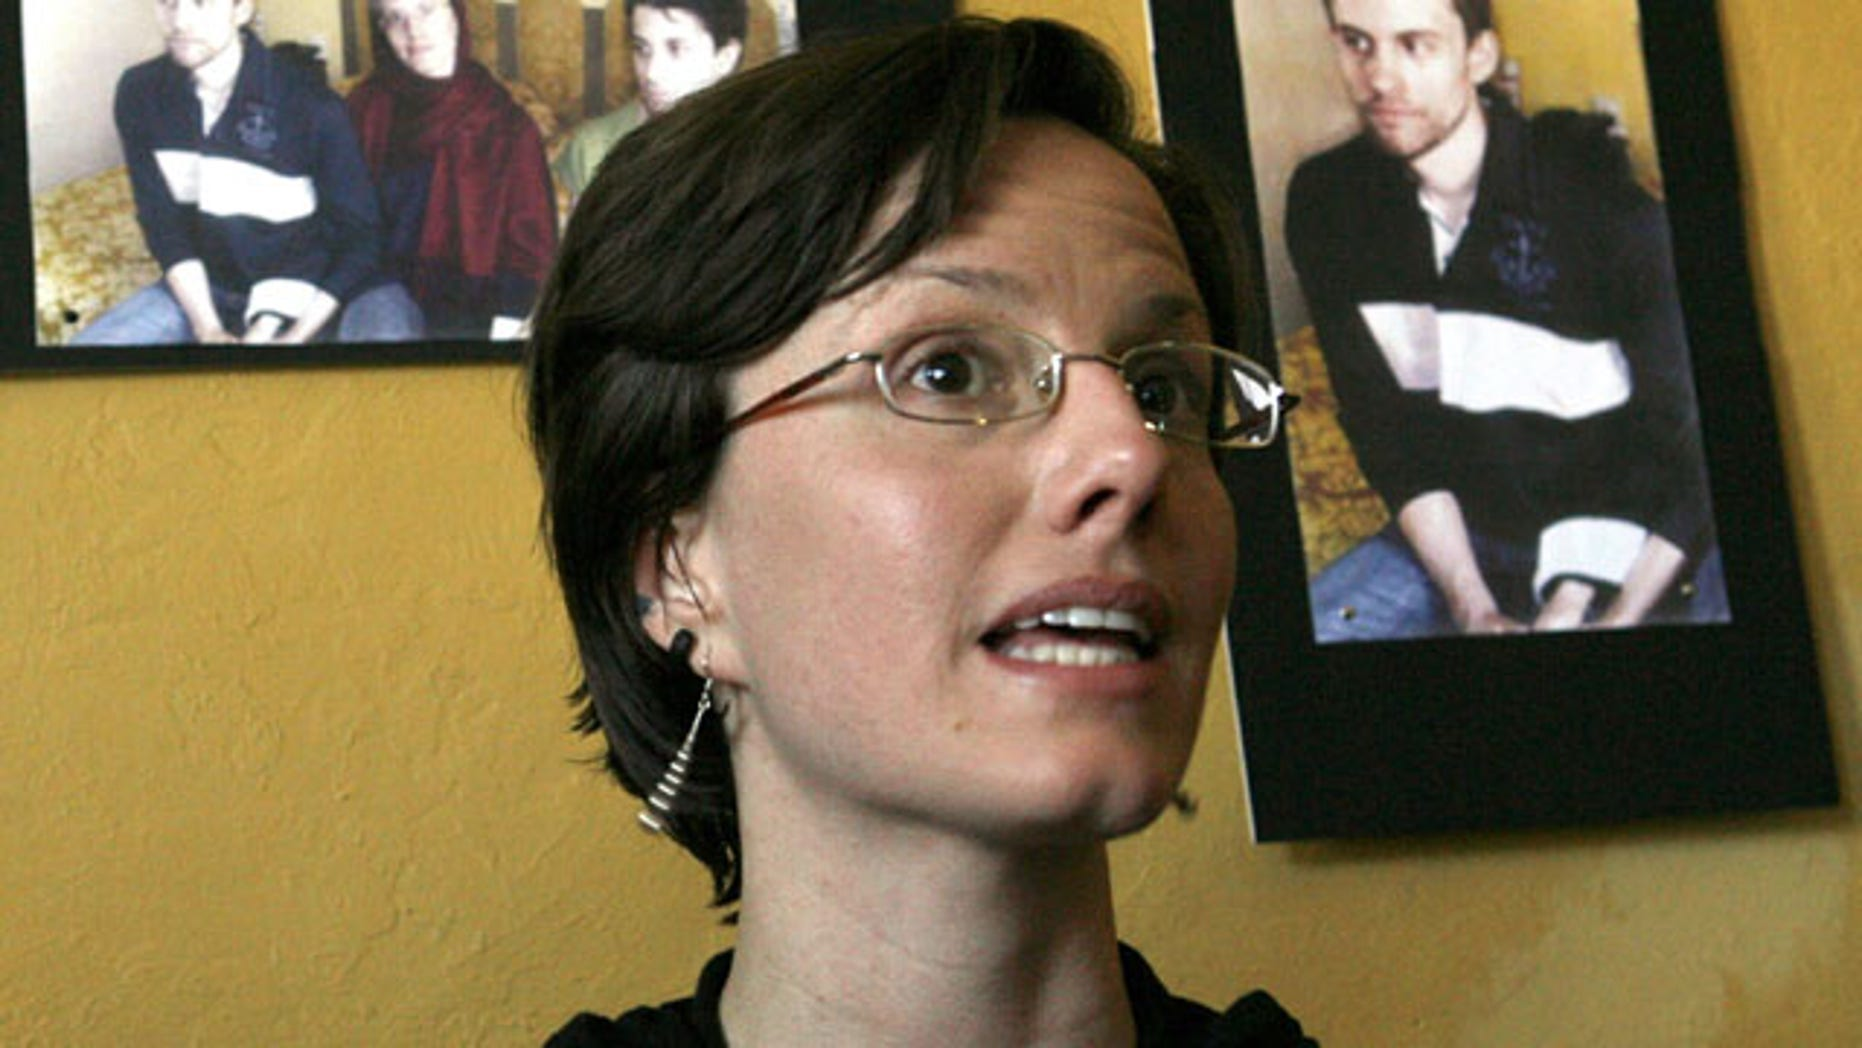 This Oct. 9, 2010, file photo shows Sarah Shourd speaking to the media in Oakland, Calif.